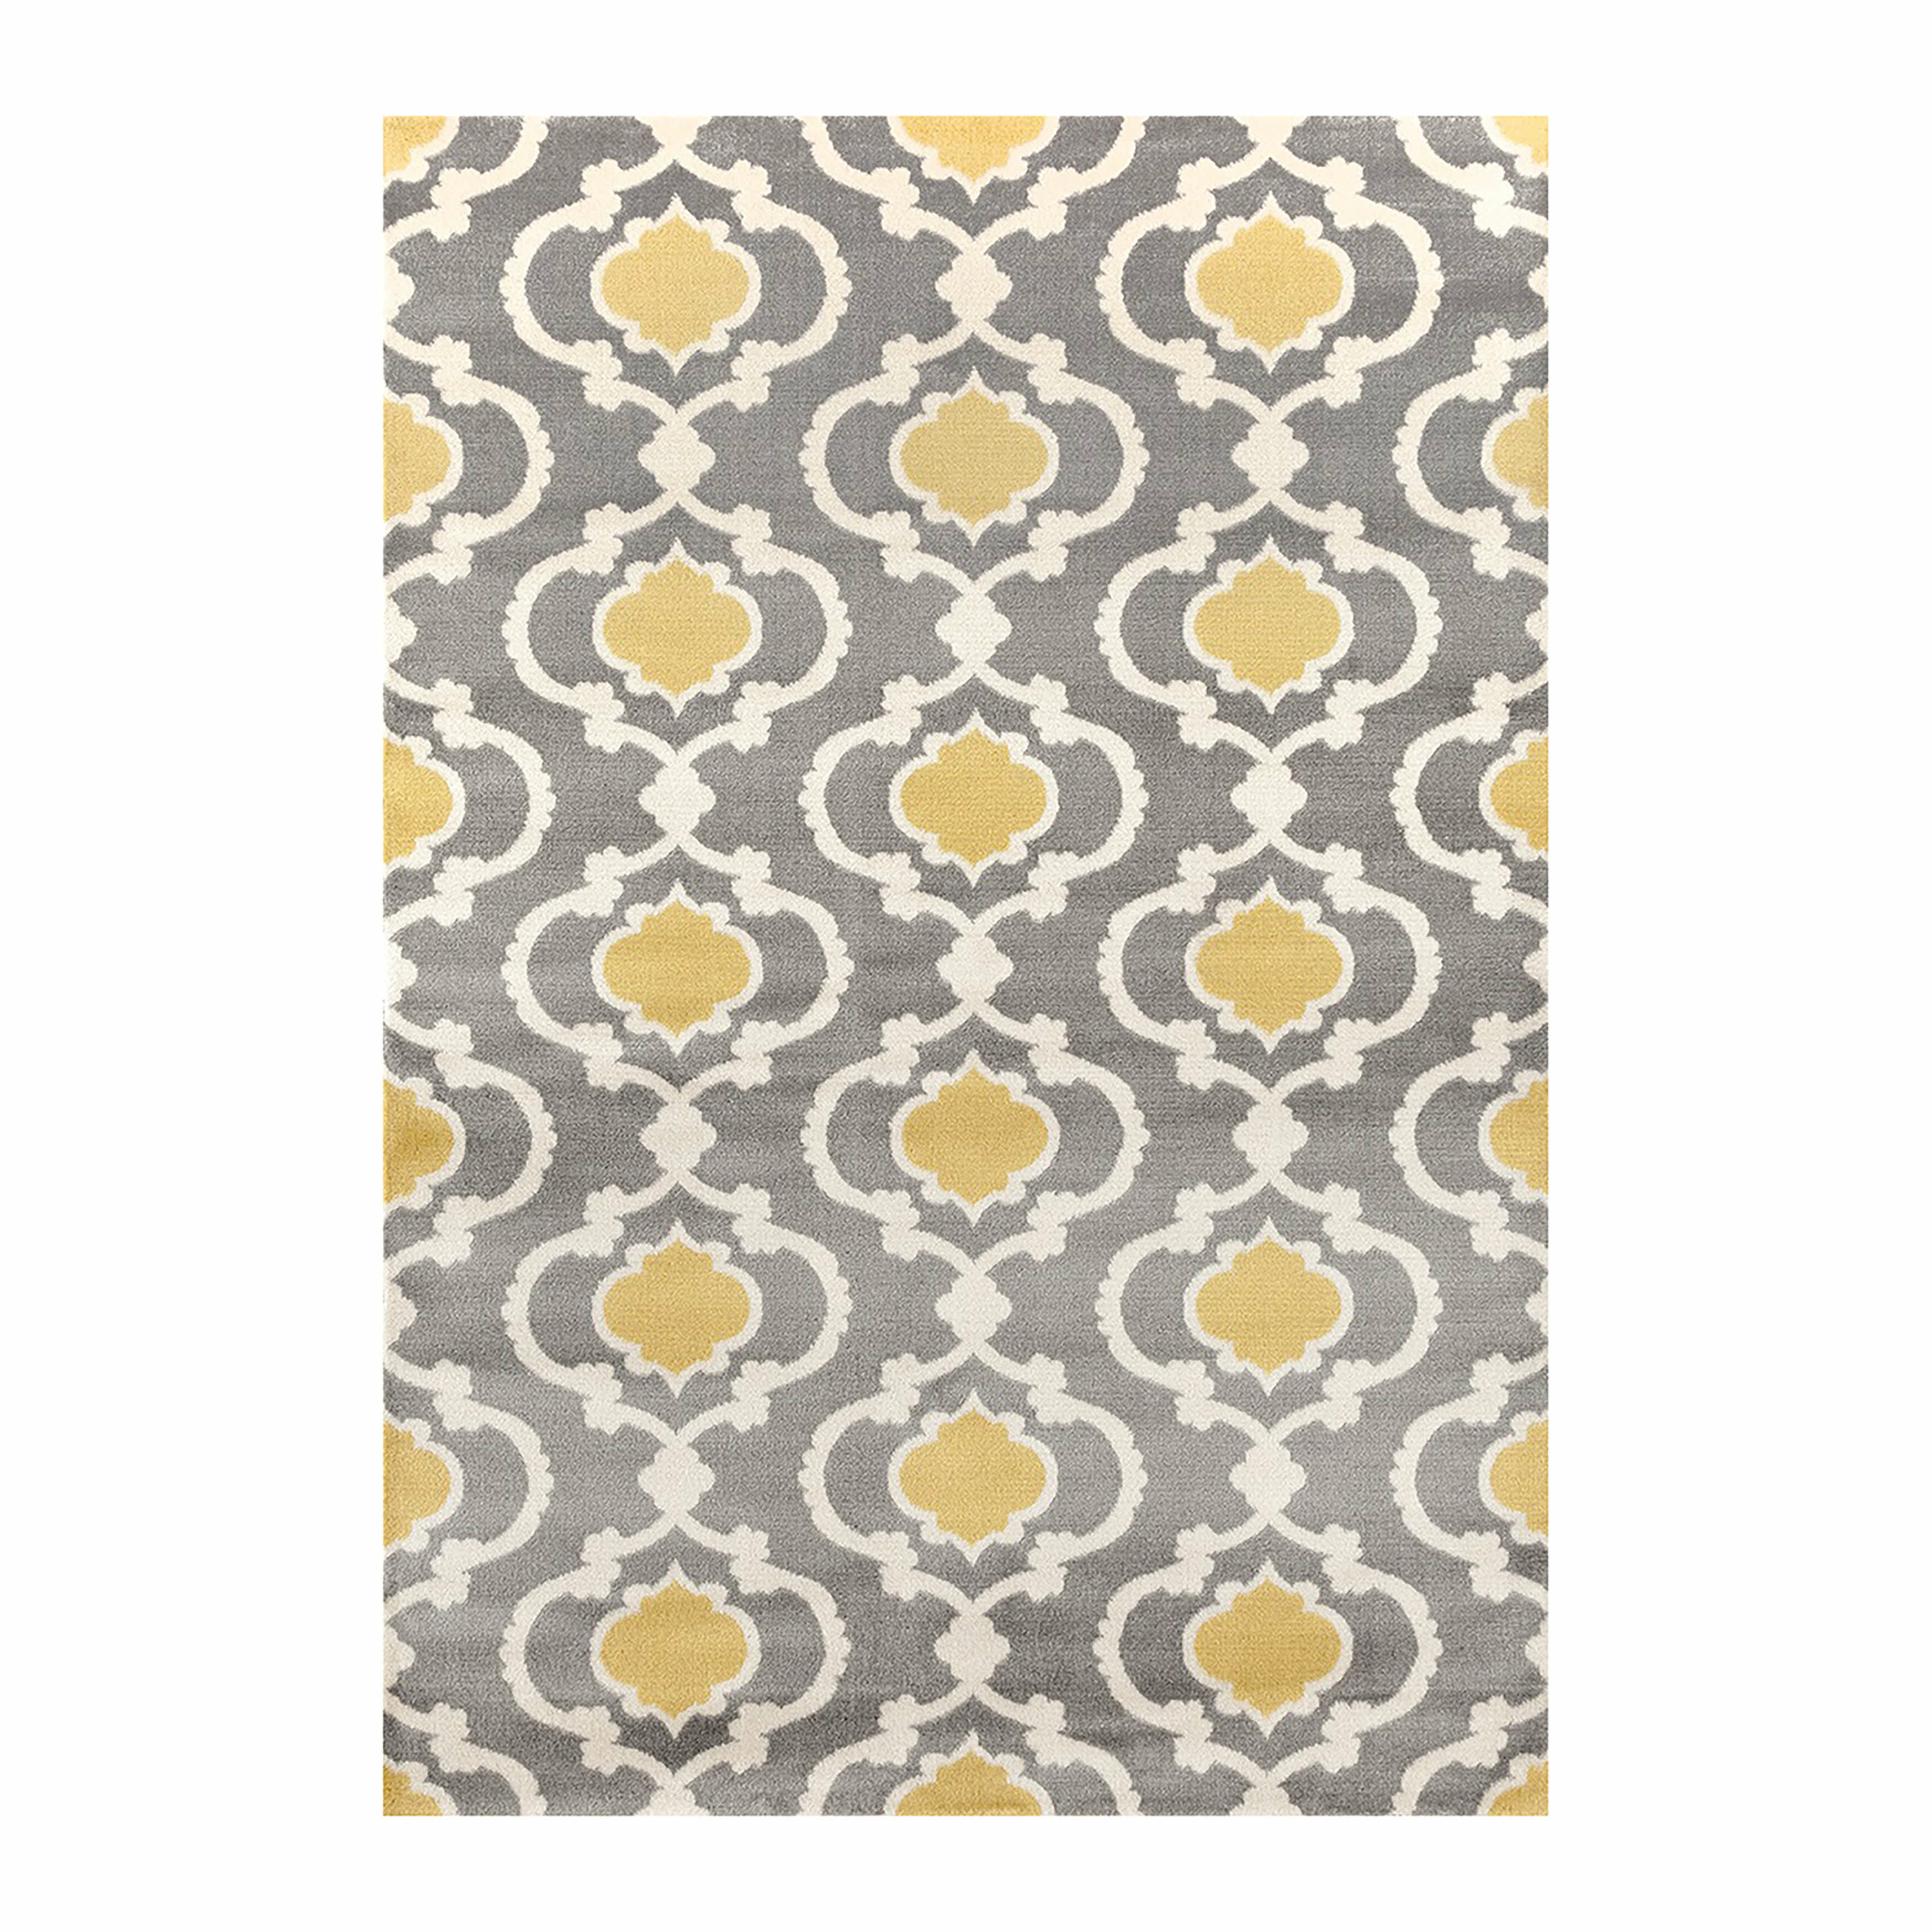 Andover Mills Melrose Polypropylene Gray Yellow Area Rug Reviews Wayfair